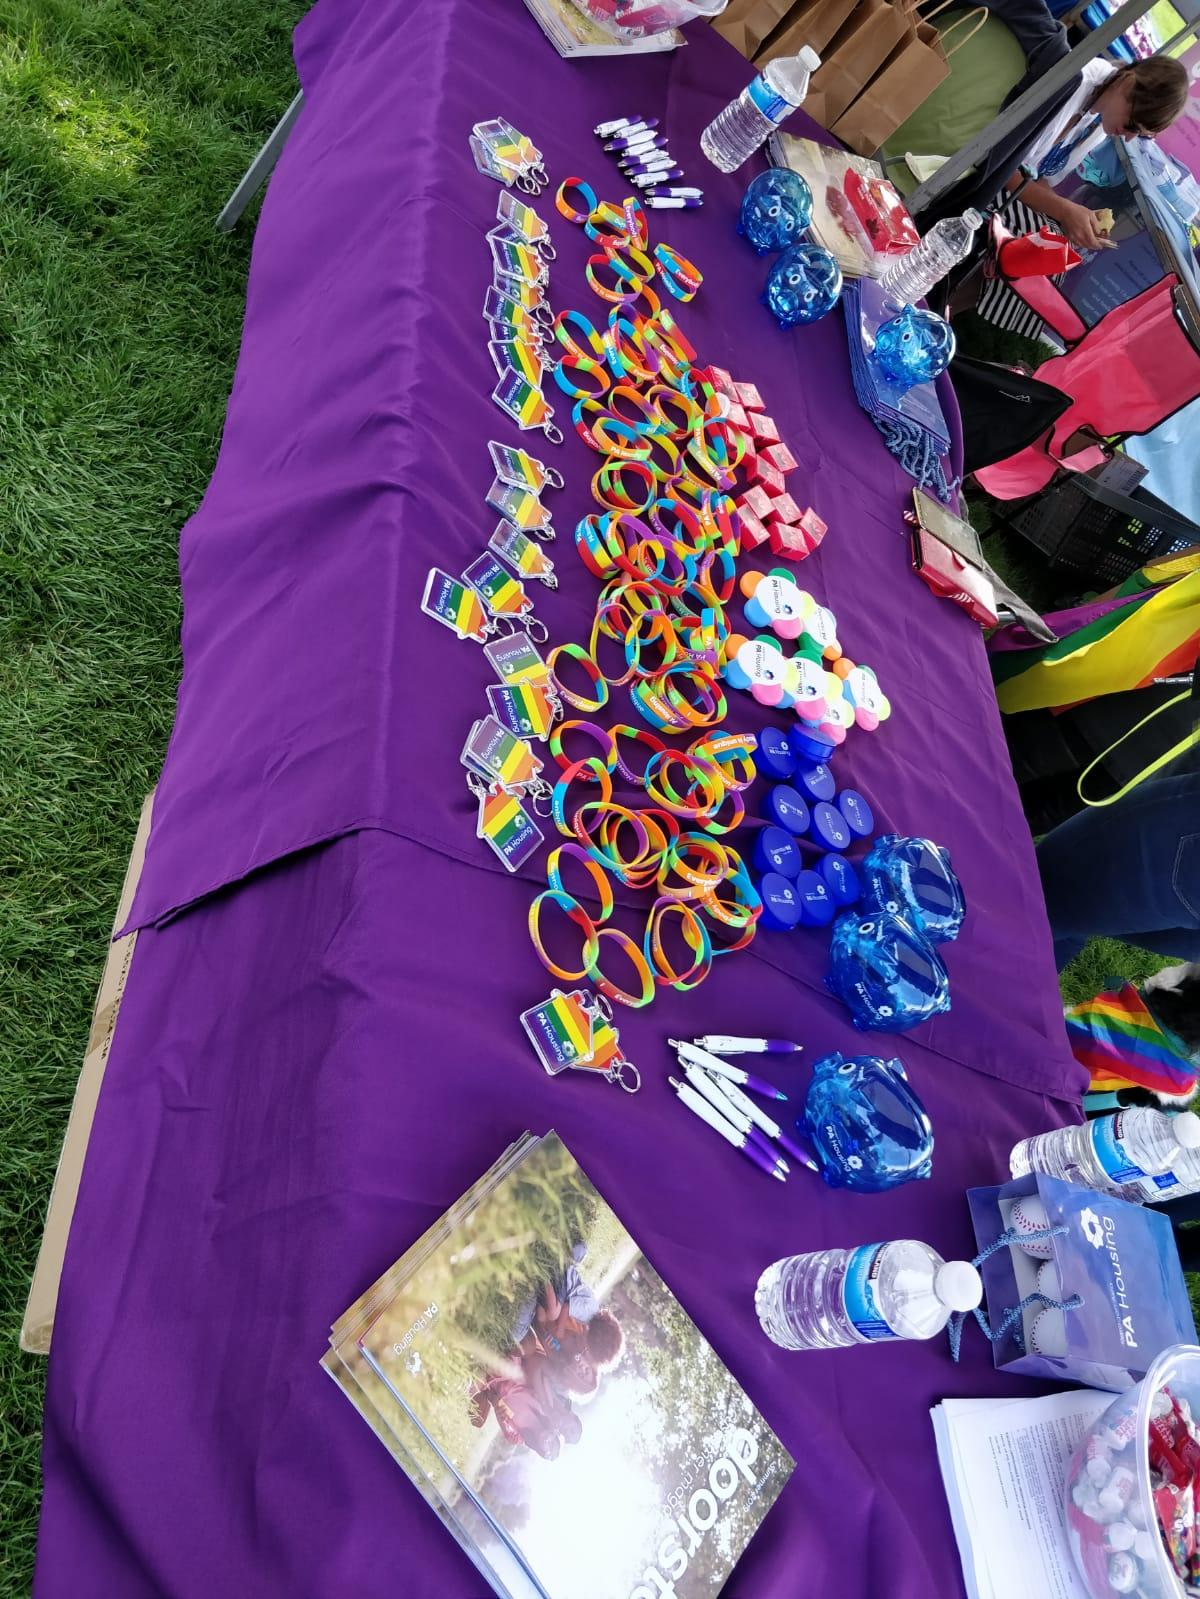 The PA Housing stall at Leicester Pride 2019.